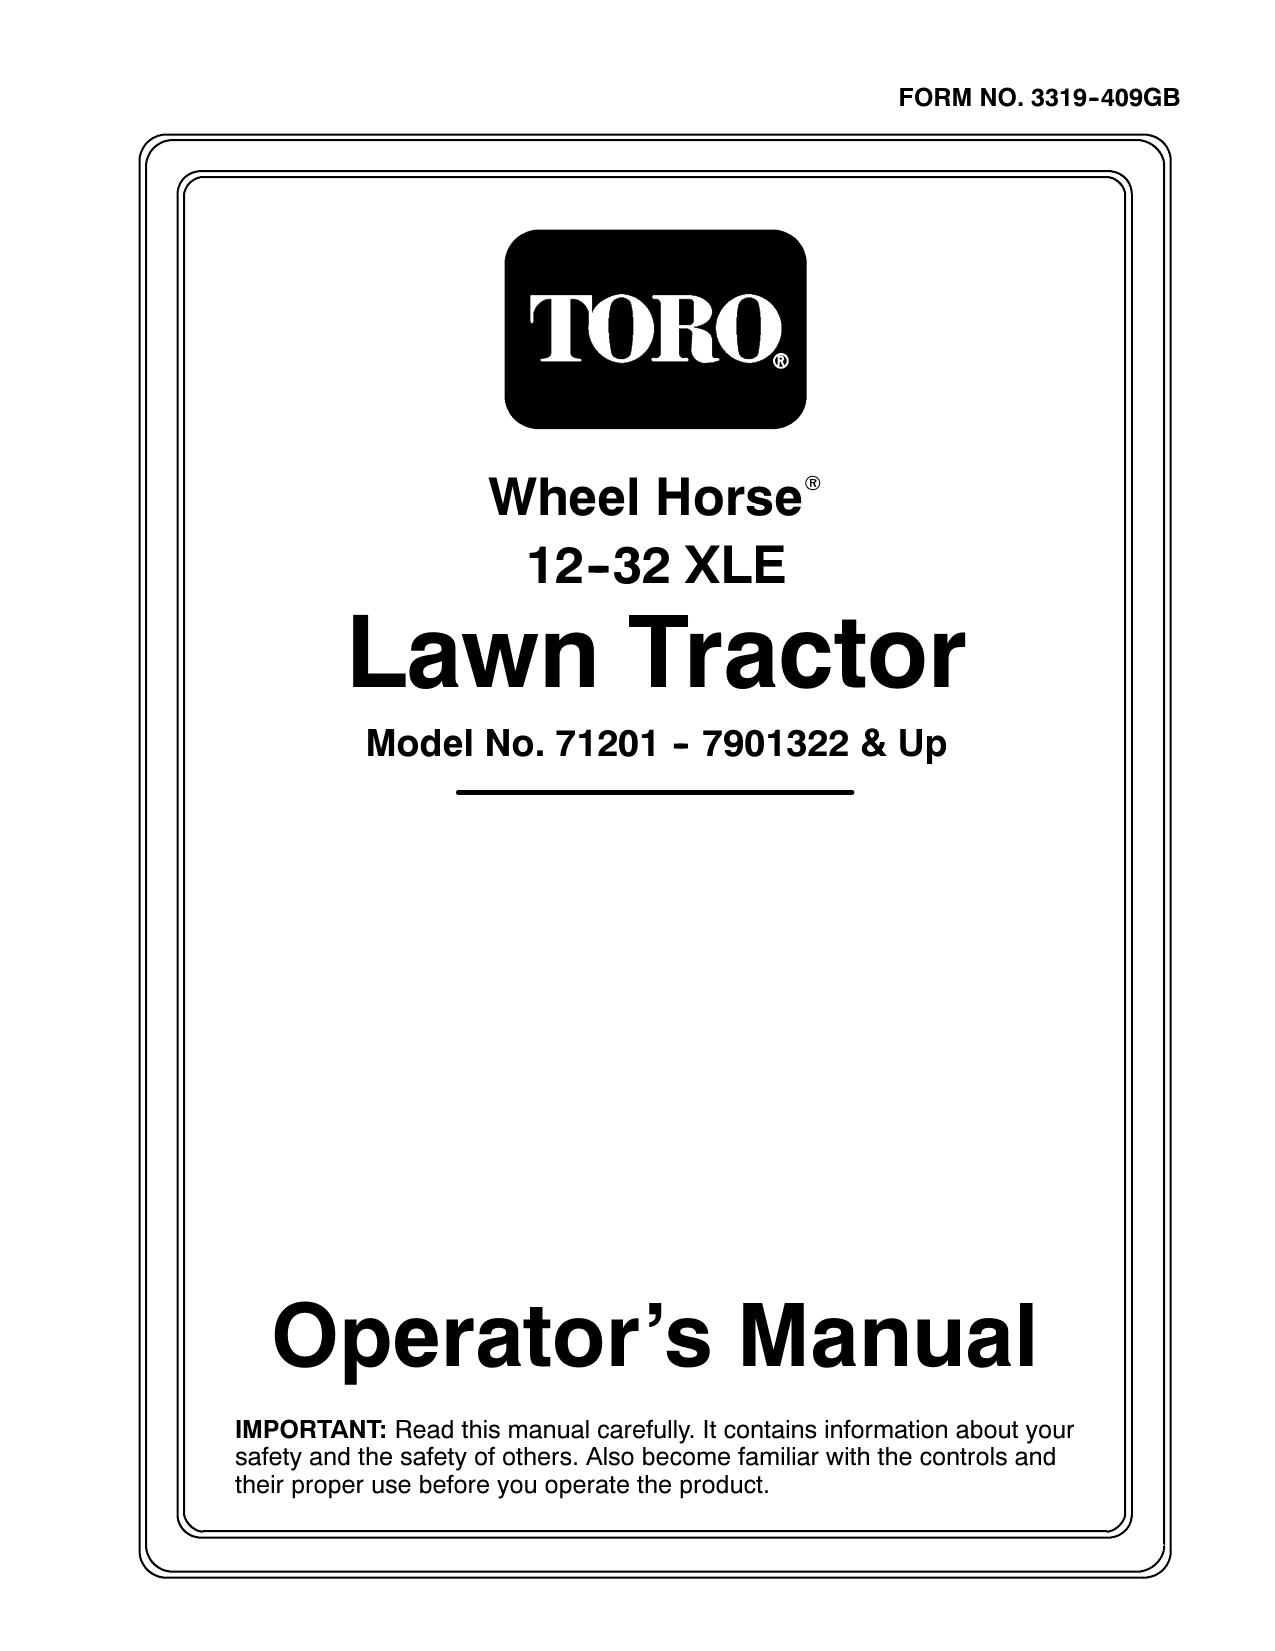 Toro 13-32XL Lawn Tractor Riding Product Operator's Manual